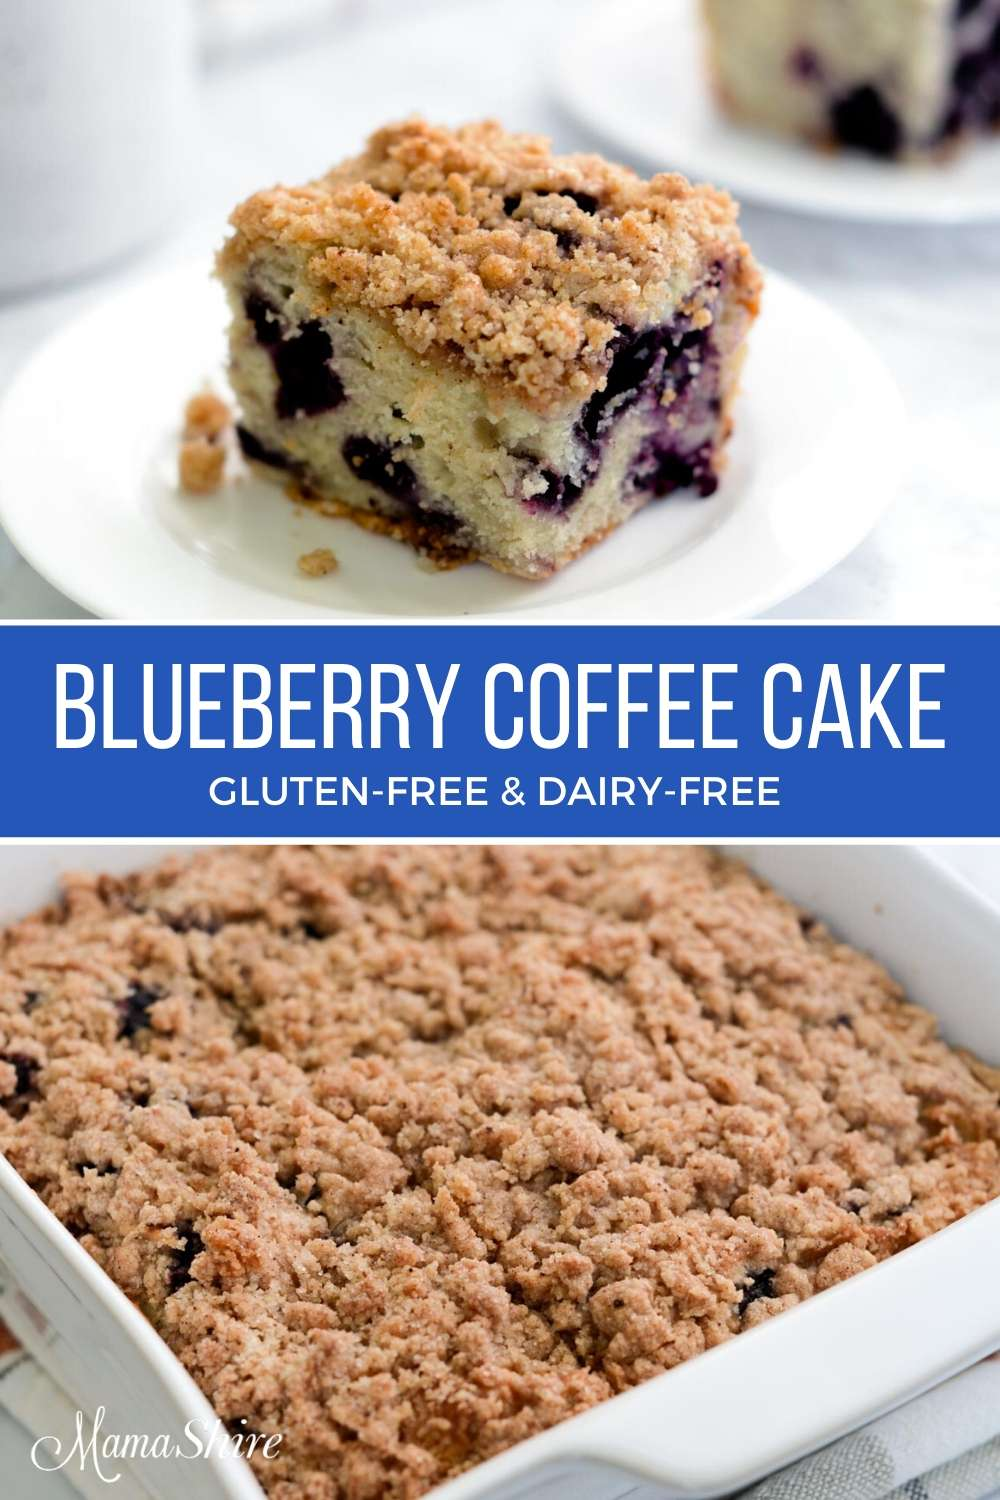 Gluten-free blueberry coffee cake.